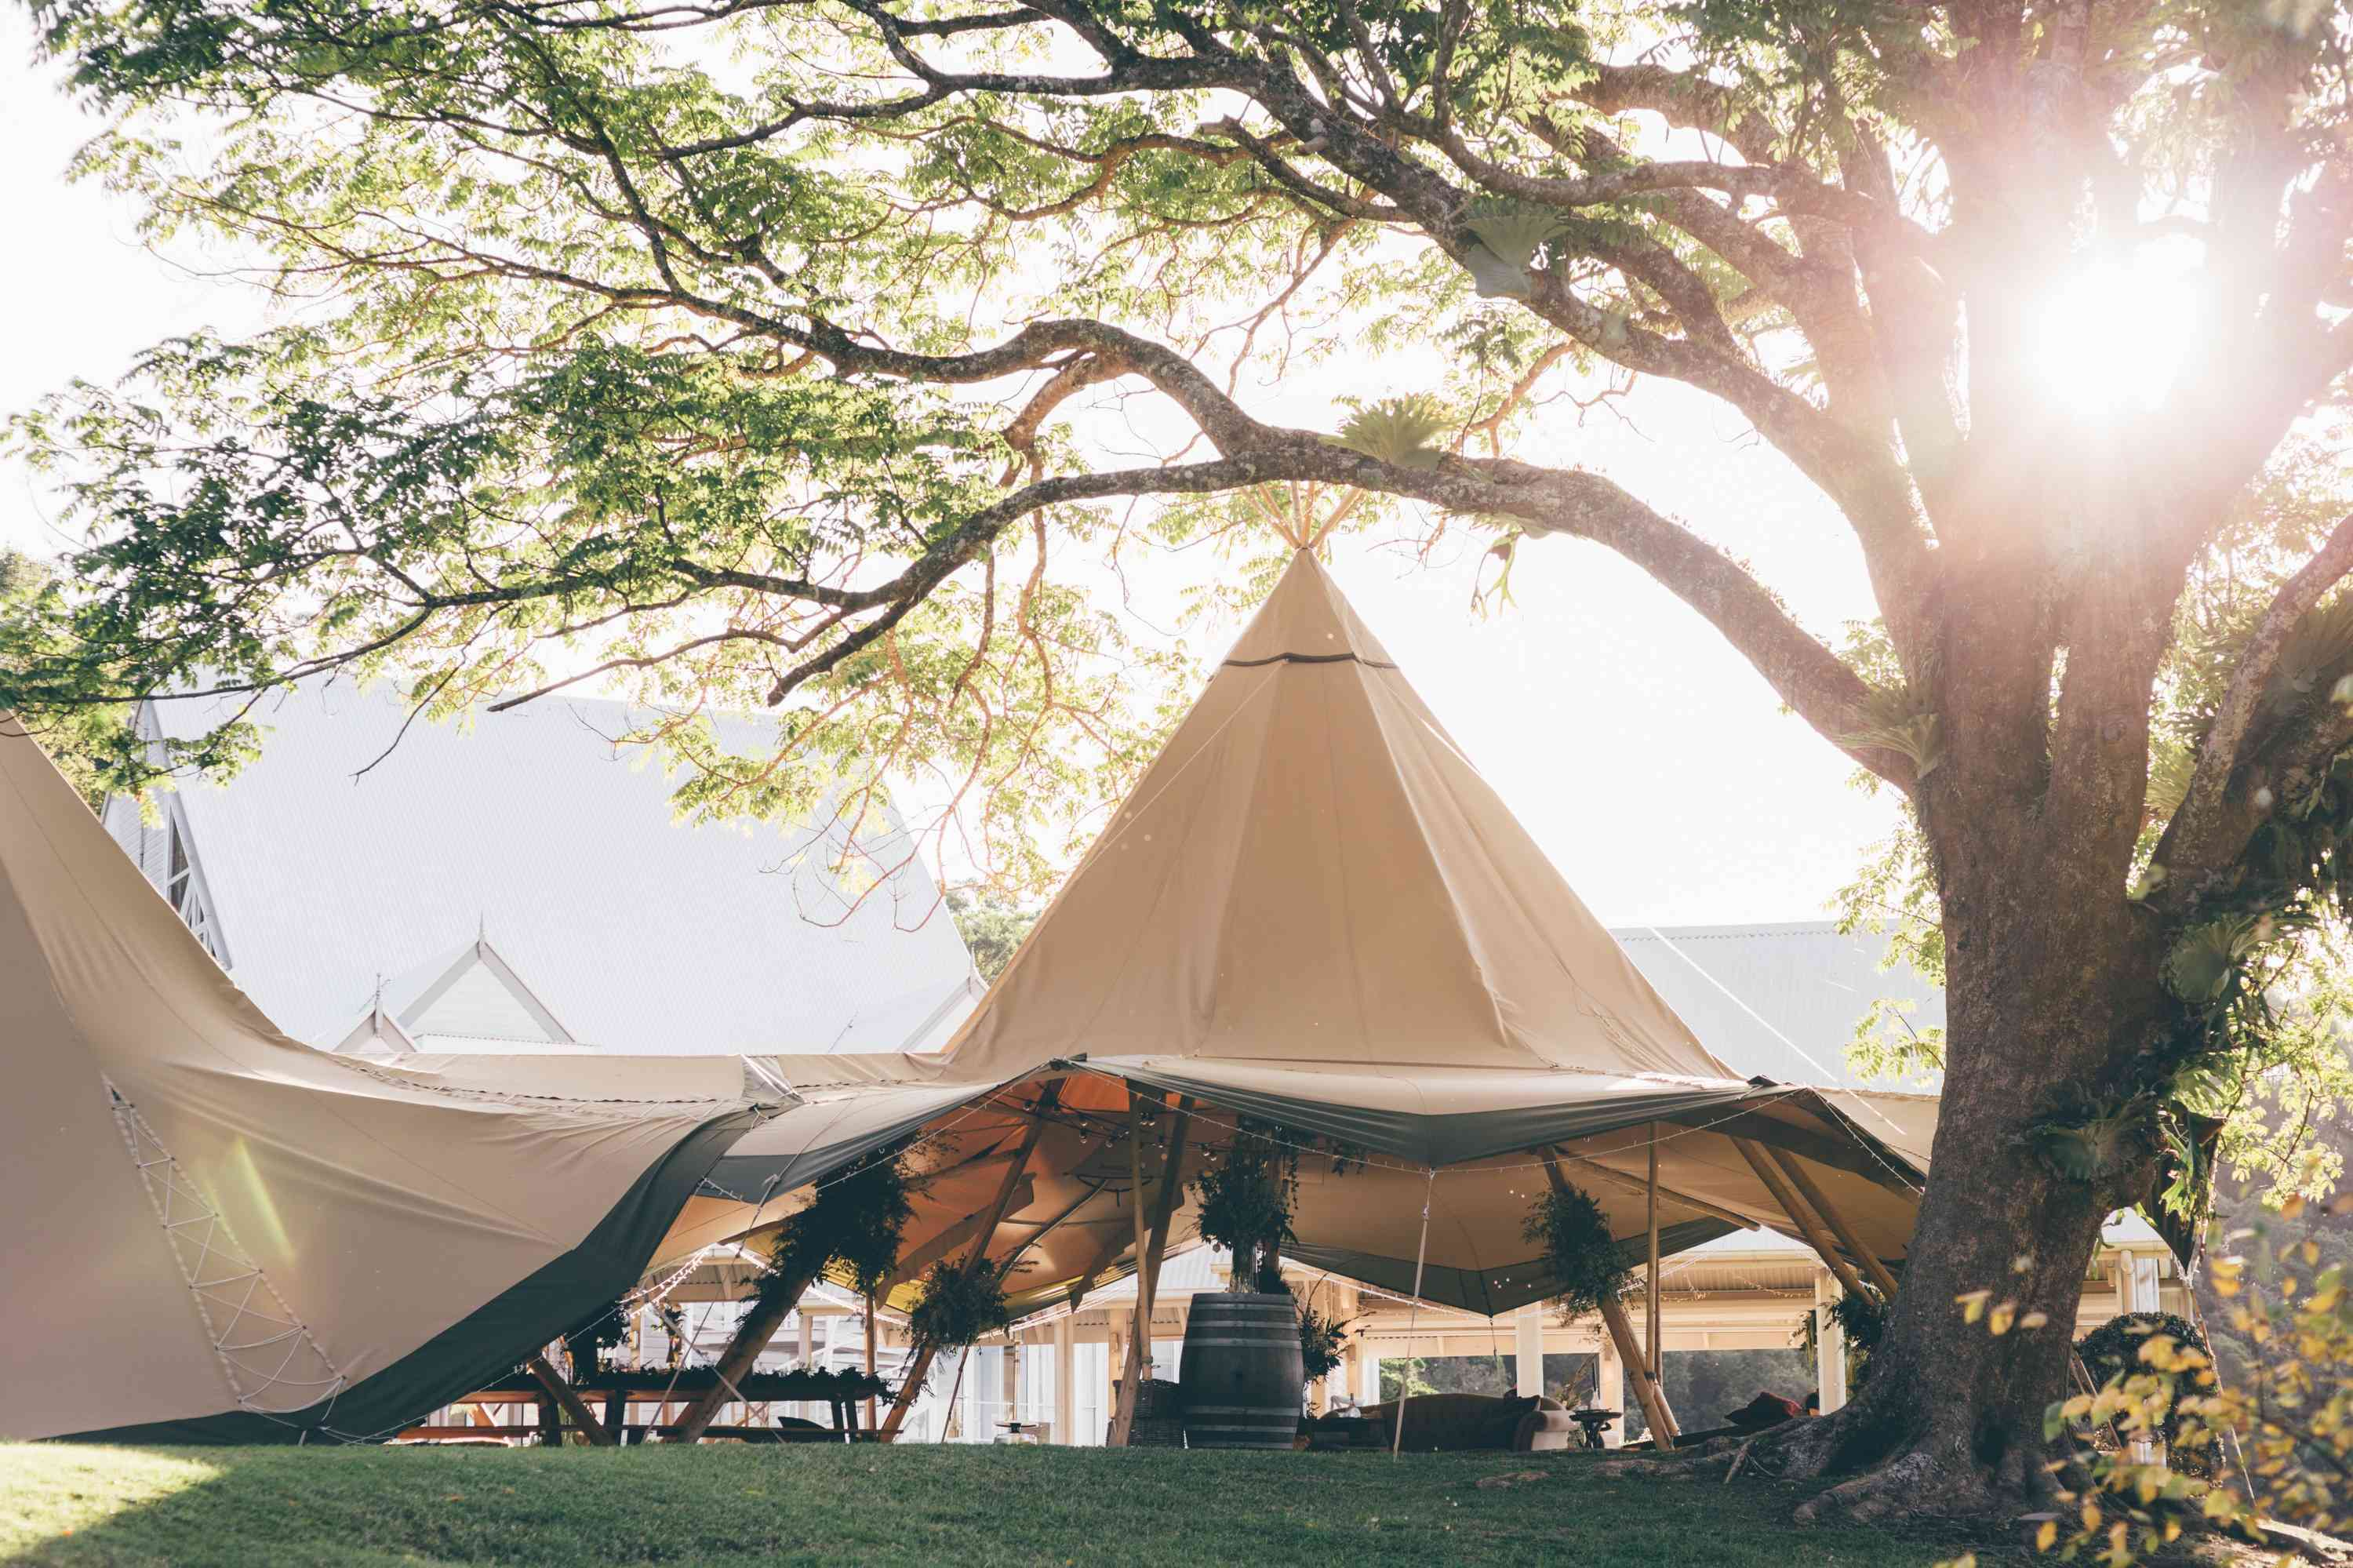 Tipi-Luxe-Double-Tipi-Configuration-Image-by-Artography-